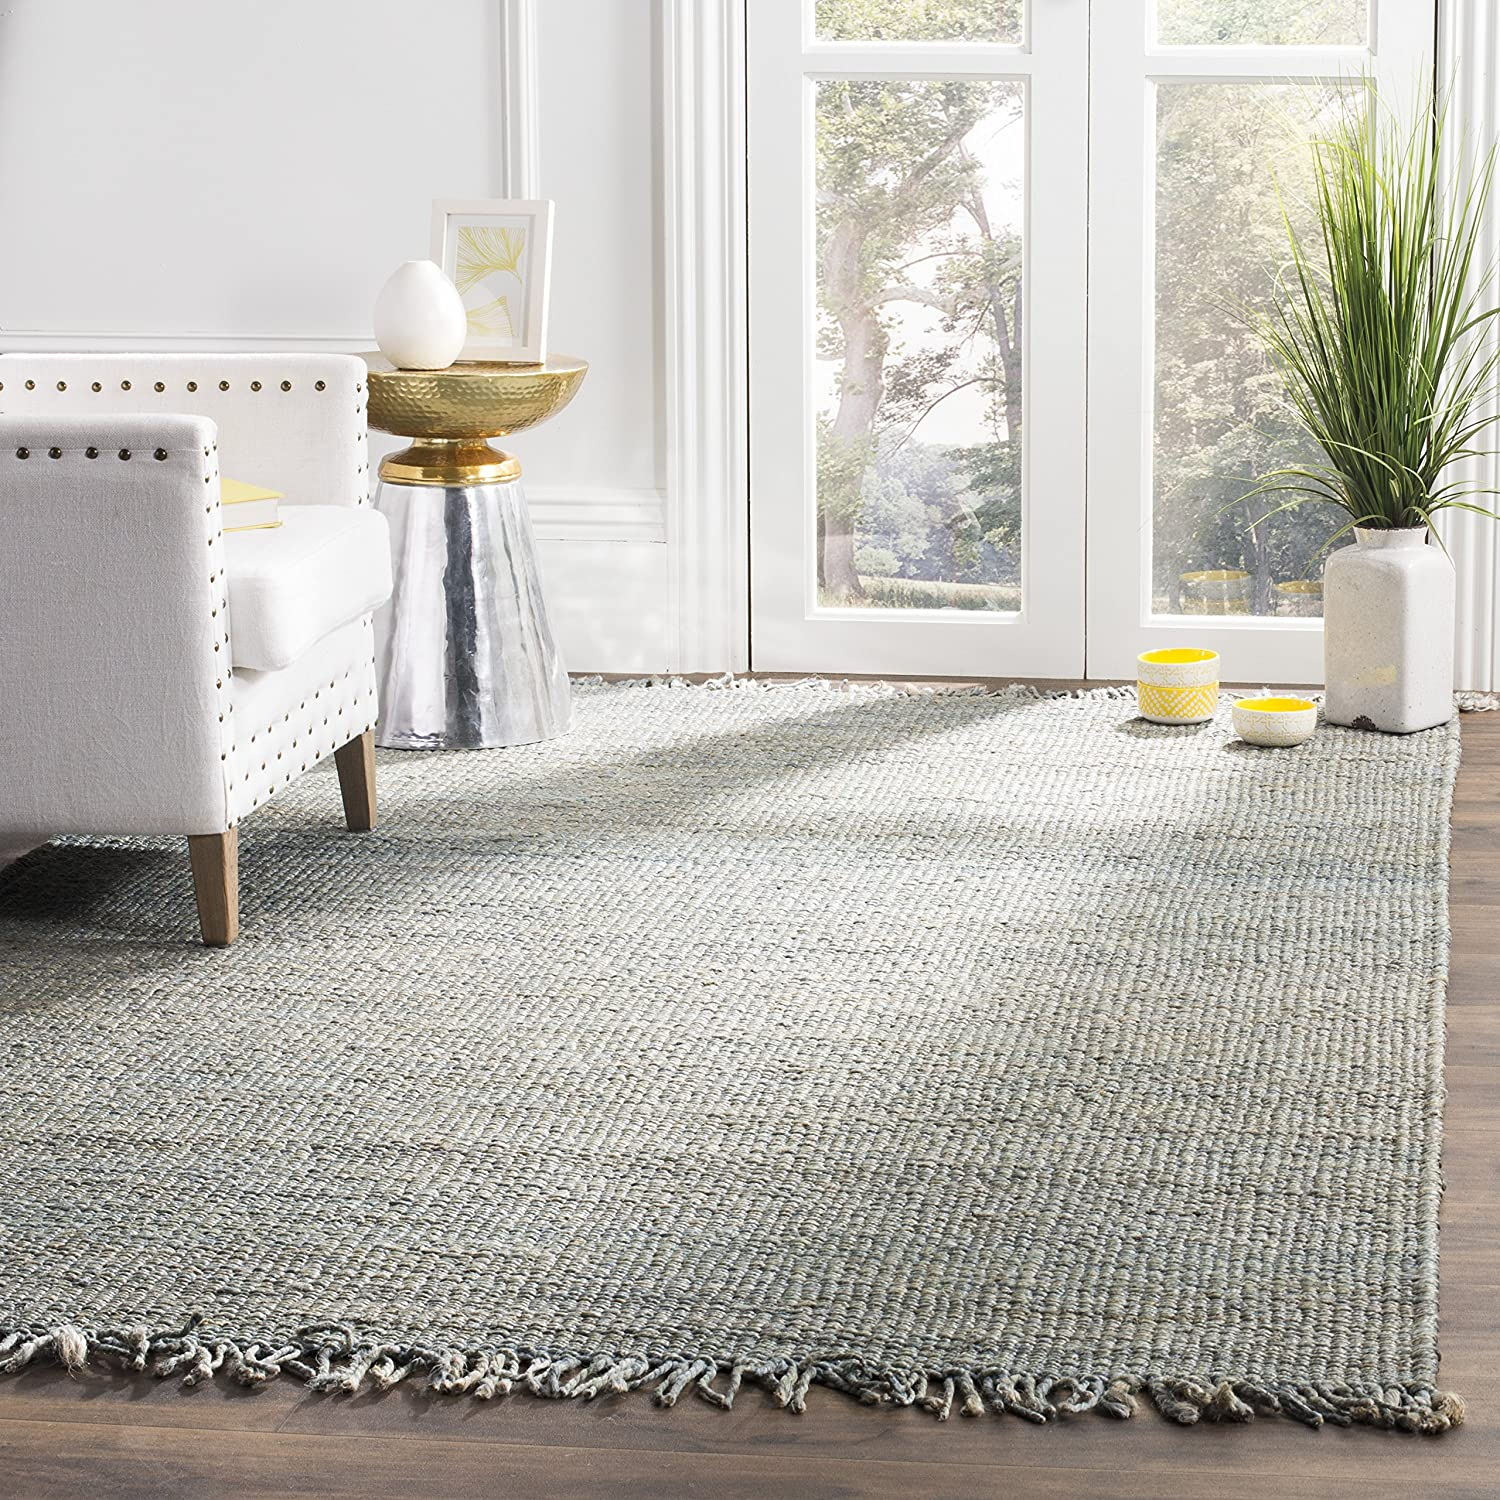 Safavieh Natural Fiber Collection NF368B Hand-Woven Ivory Jute Area Rug 3 x 5